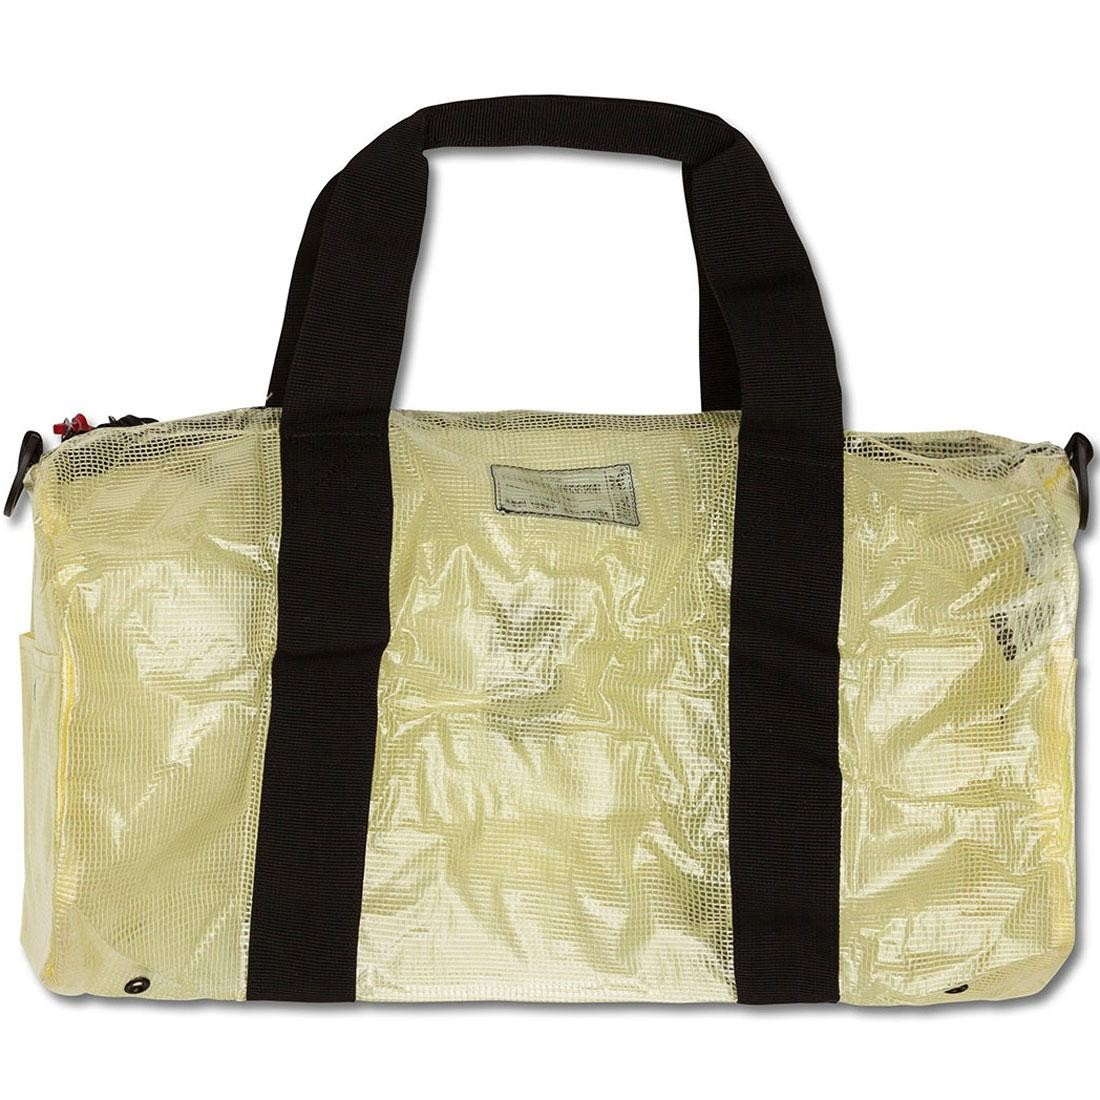 5b1fe6ab1b86 Stussy x Herschel Supply Co Duffle Bag - Clear Tarp Collab white clear